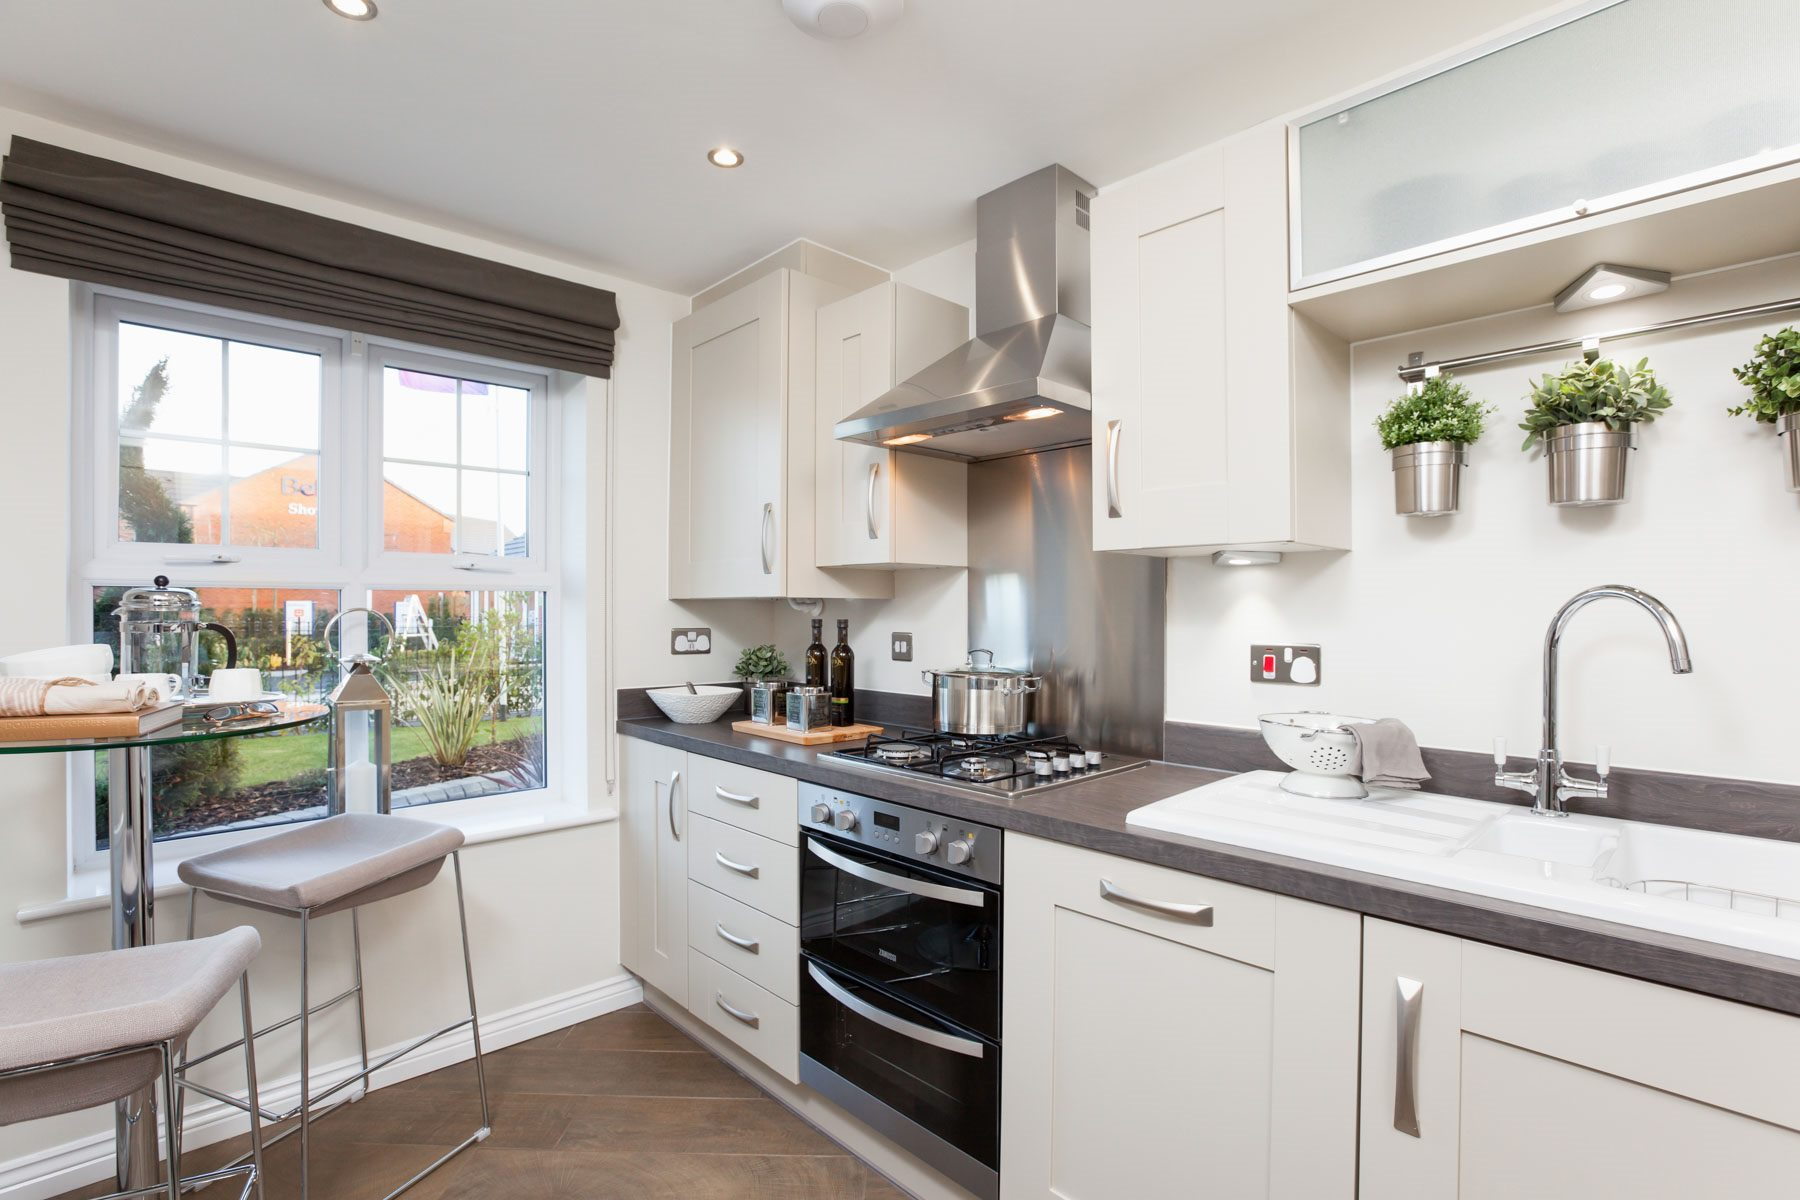 010_SG_Dadford_Kitchen